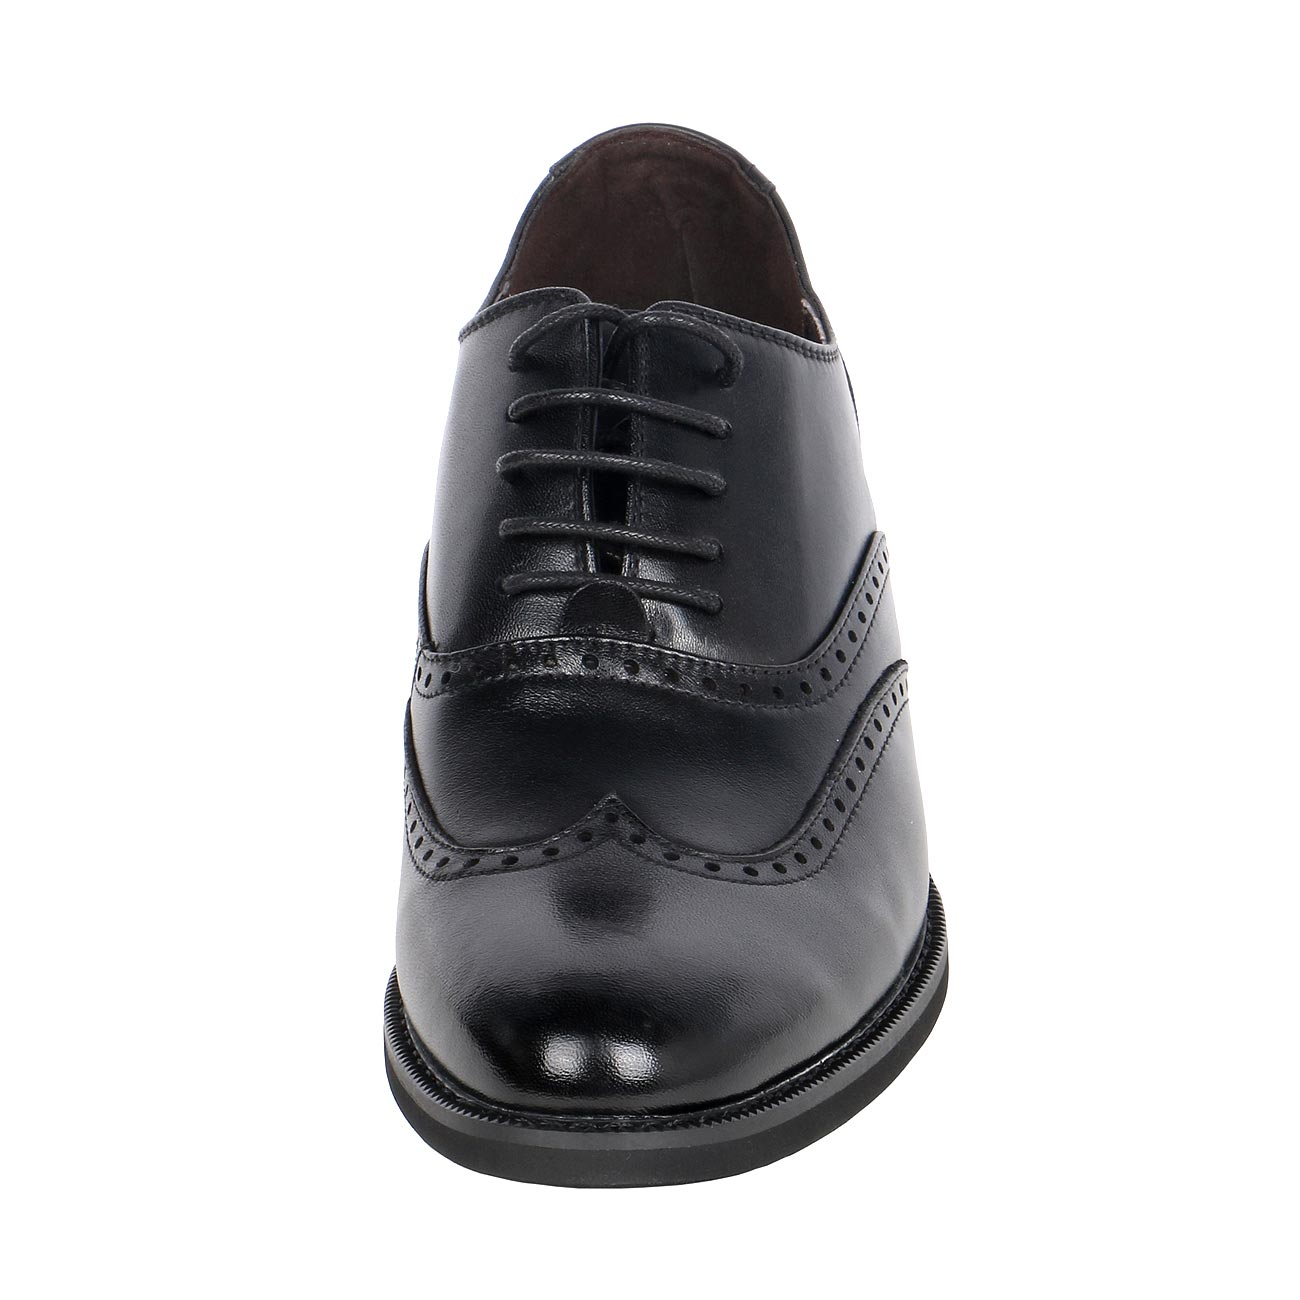 Royal Wing Tip Classic Broguing Stylish Gentlemen Shoe Height Tall